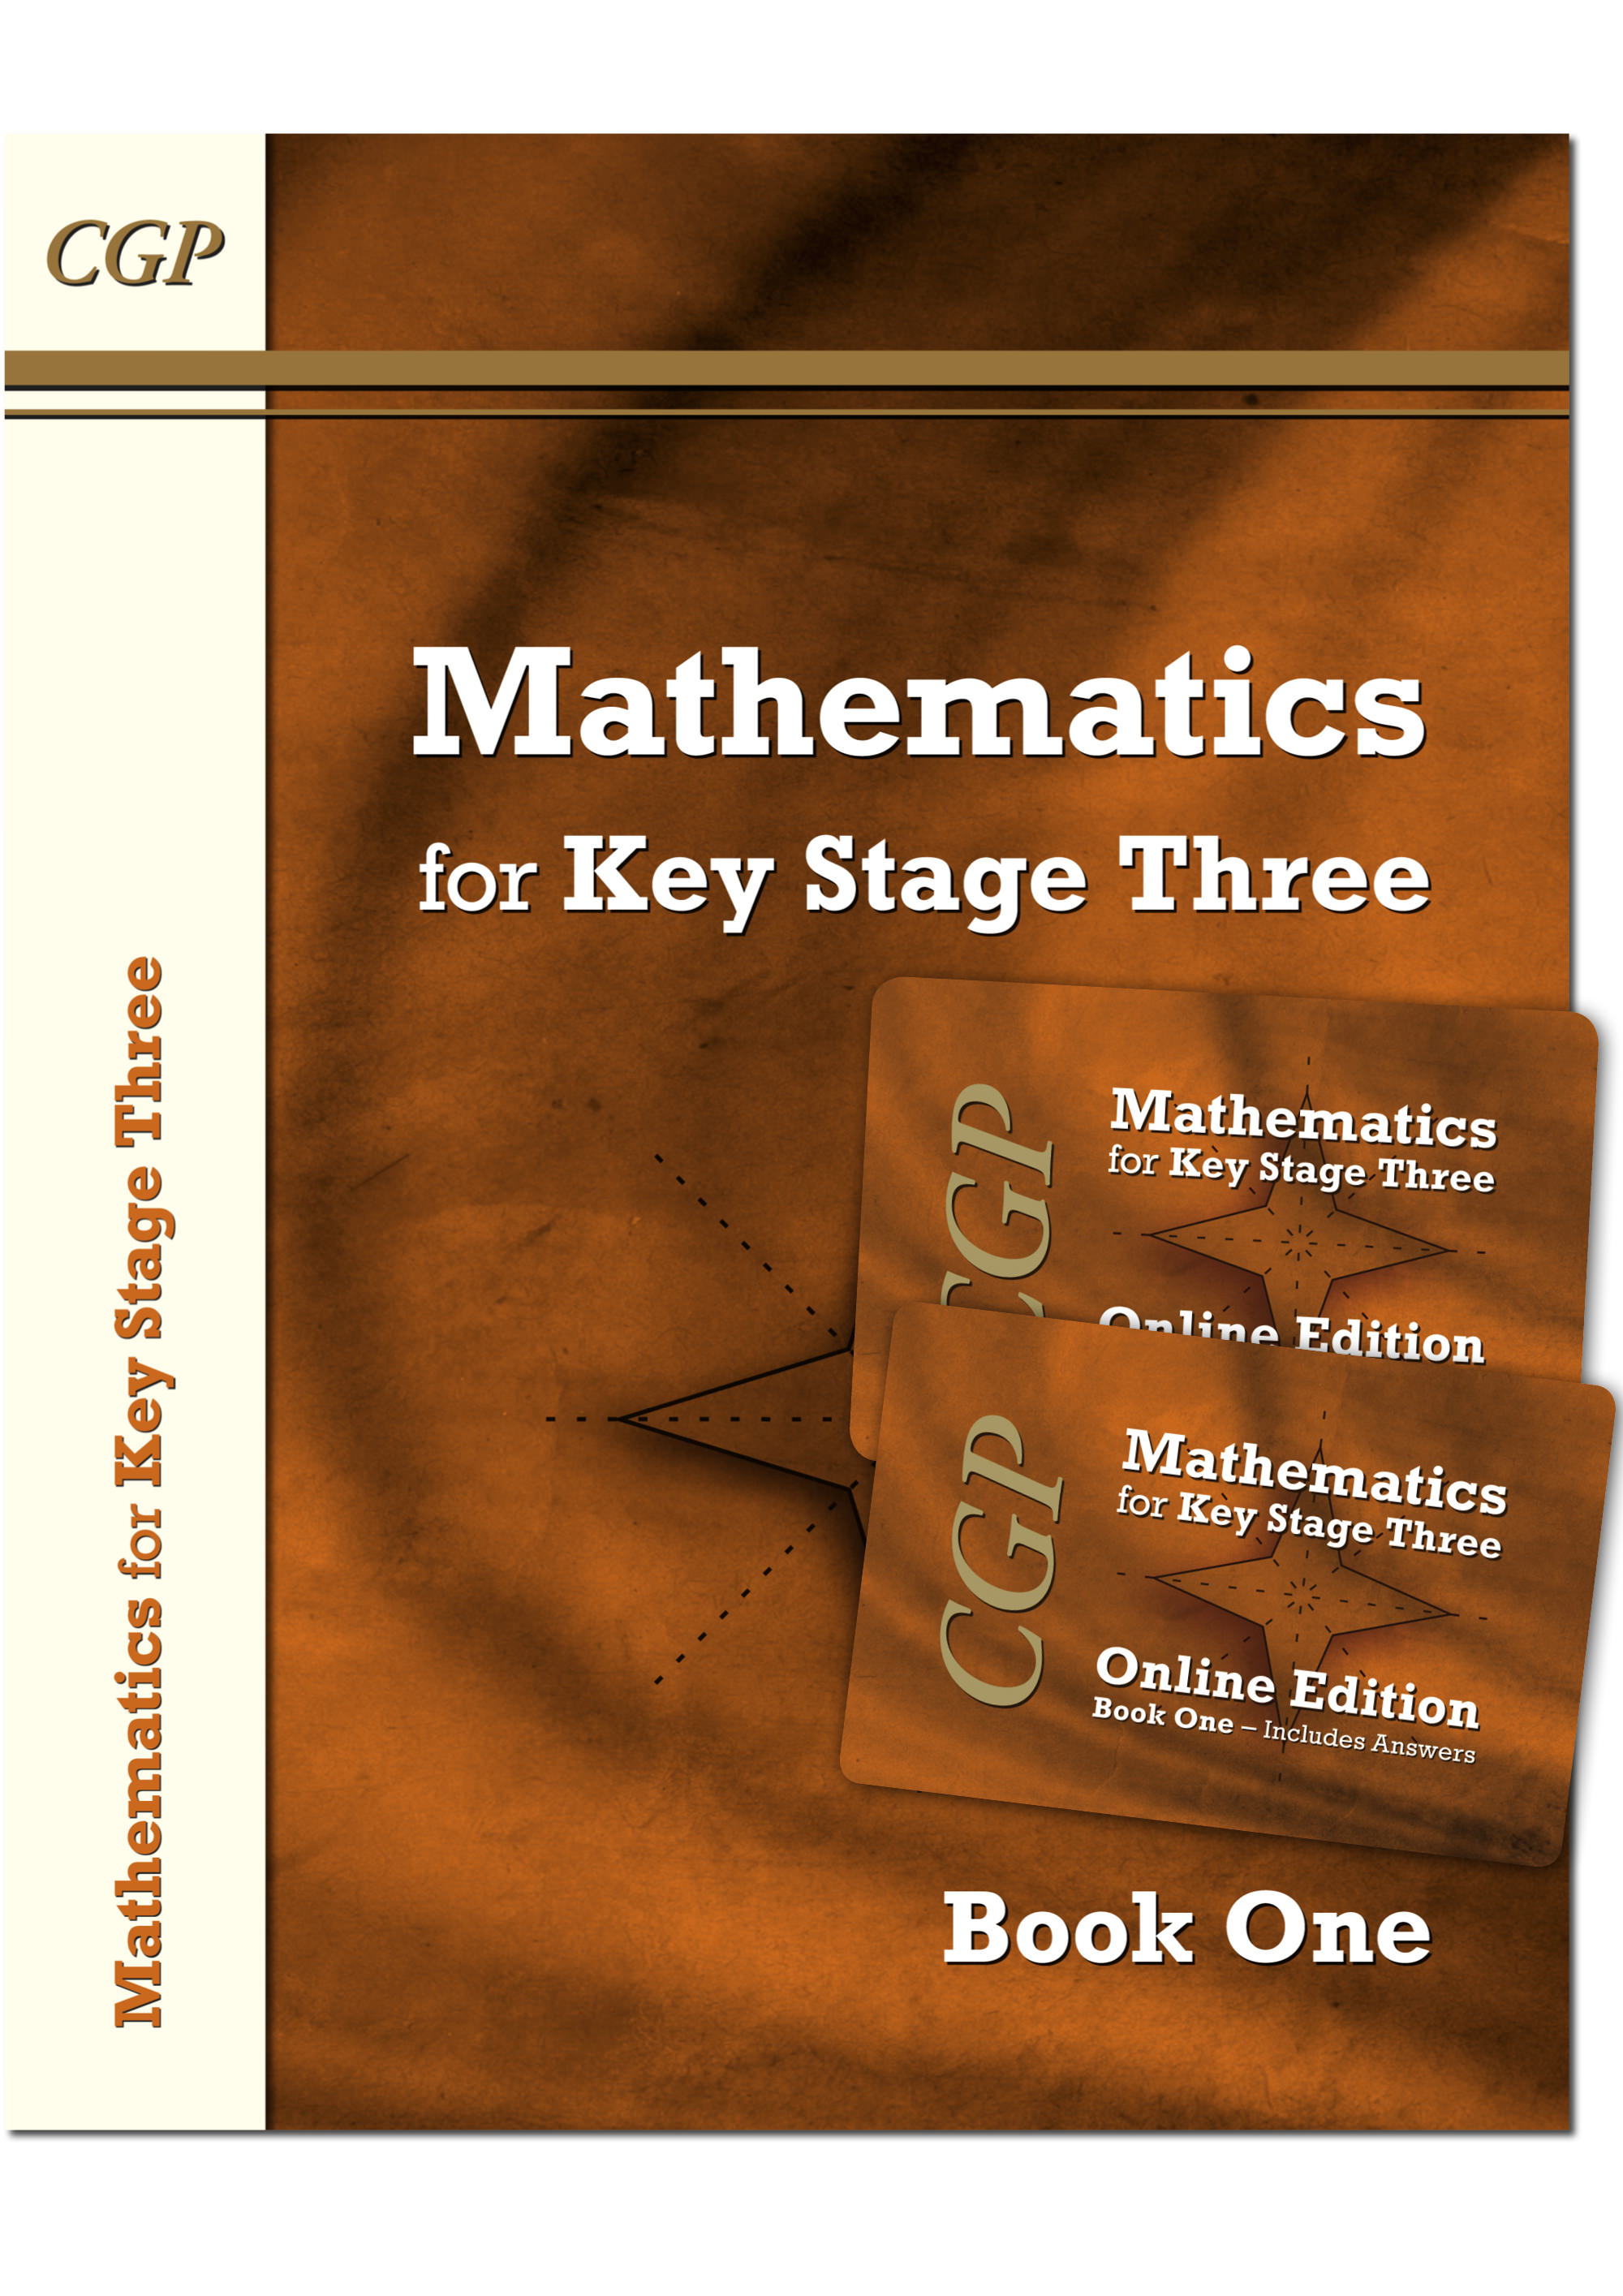 M1NB31 - KS3 Maths Textbook 1 plus two Online Editions (with answers)